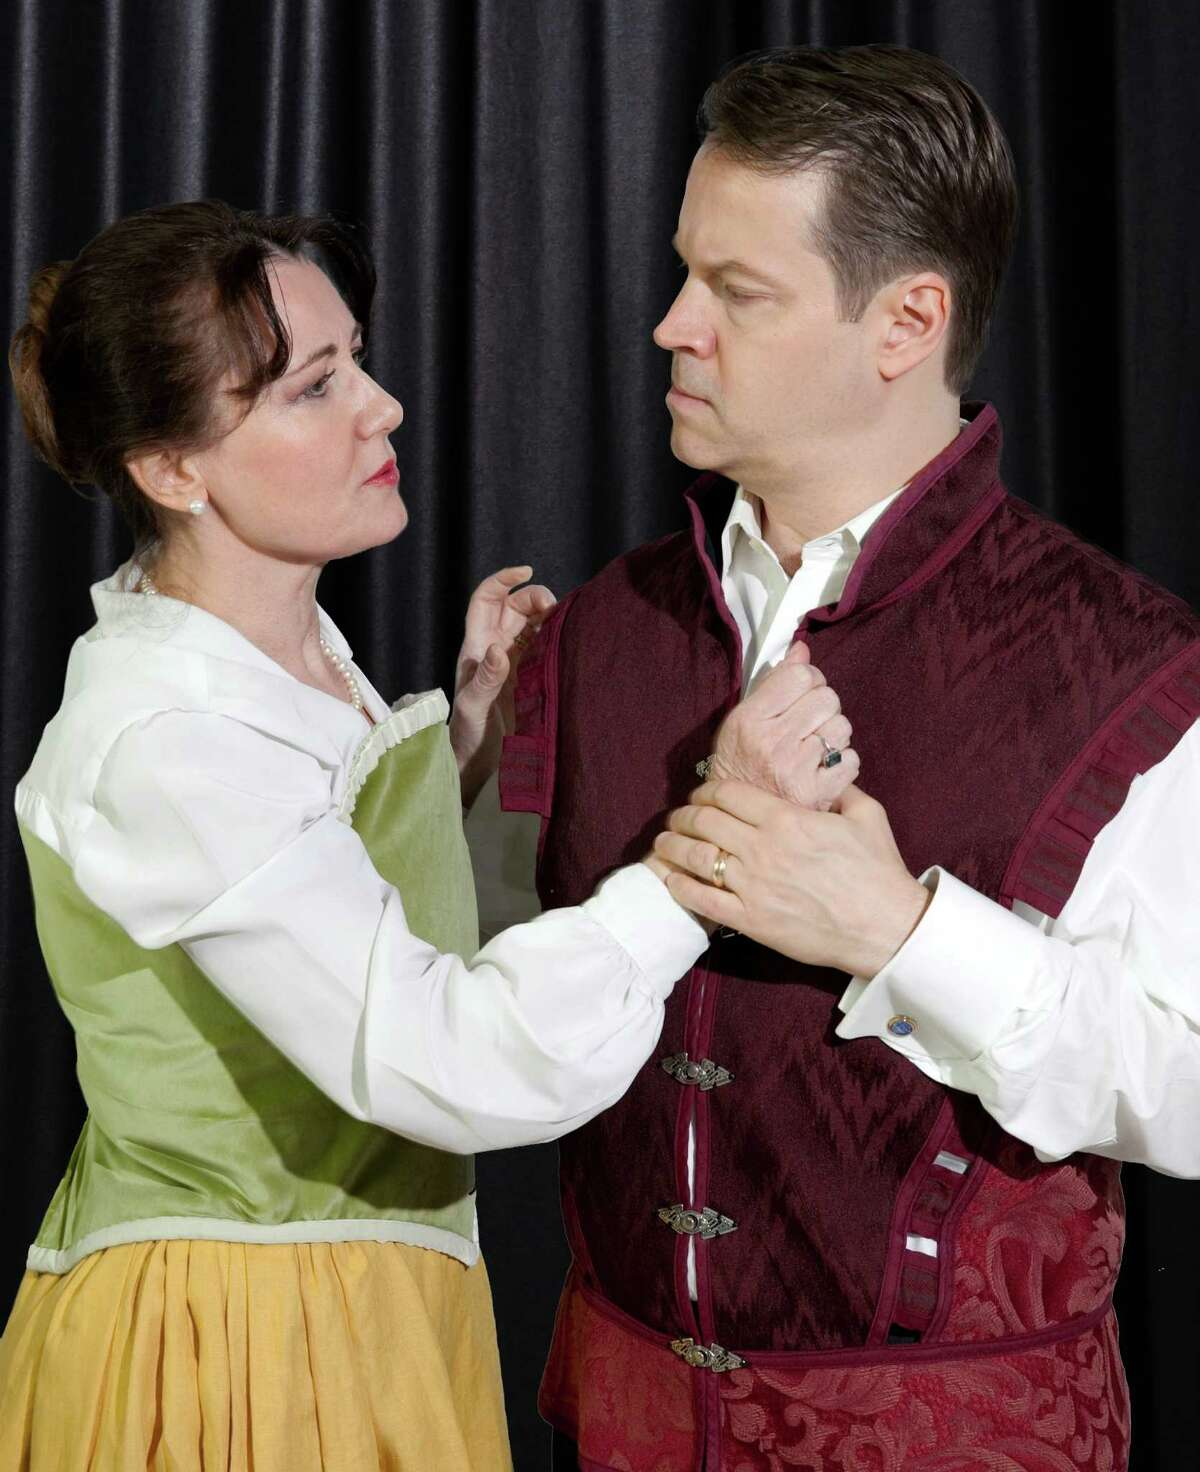 Alison Murphy and Mark E. Lane star in